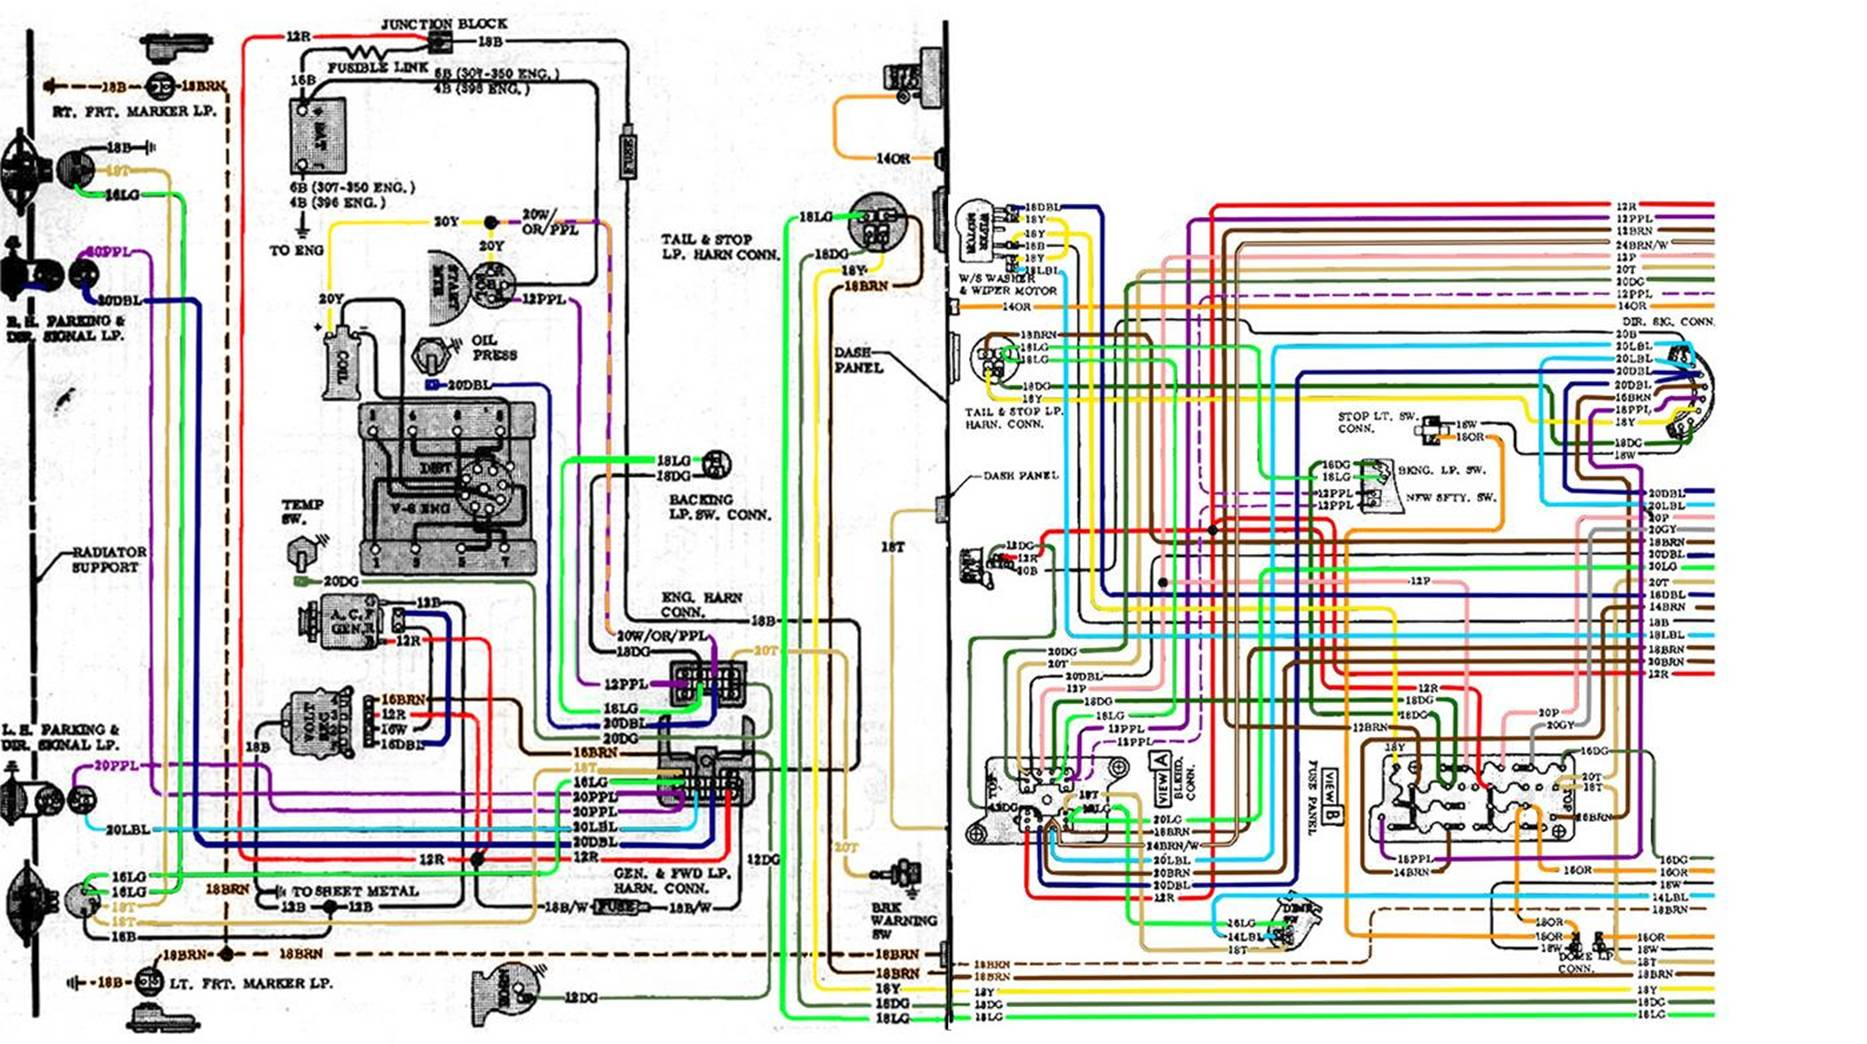 1971 Chevelle Wiring Harness Schematic Simple Diagrams 71 Mustang Diagram Third Level 66 Schematics